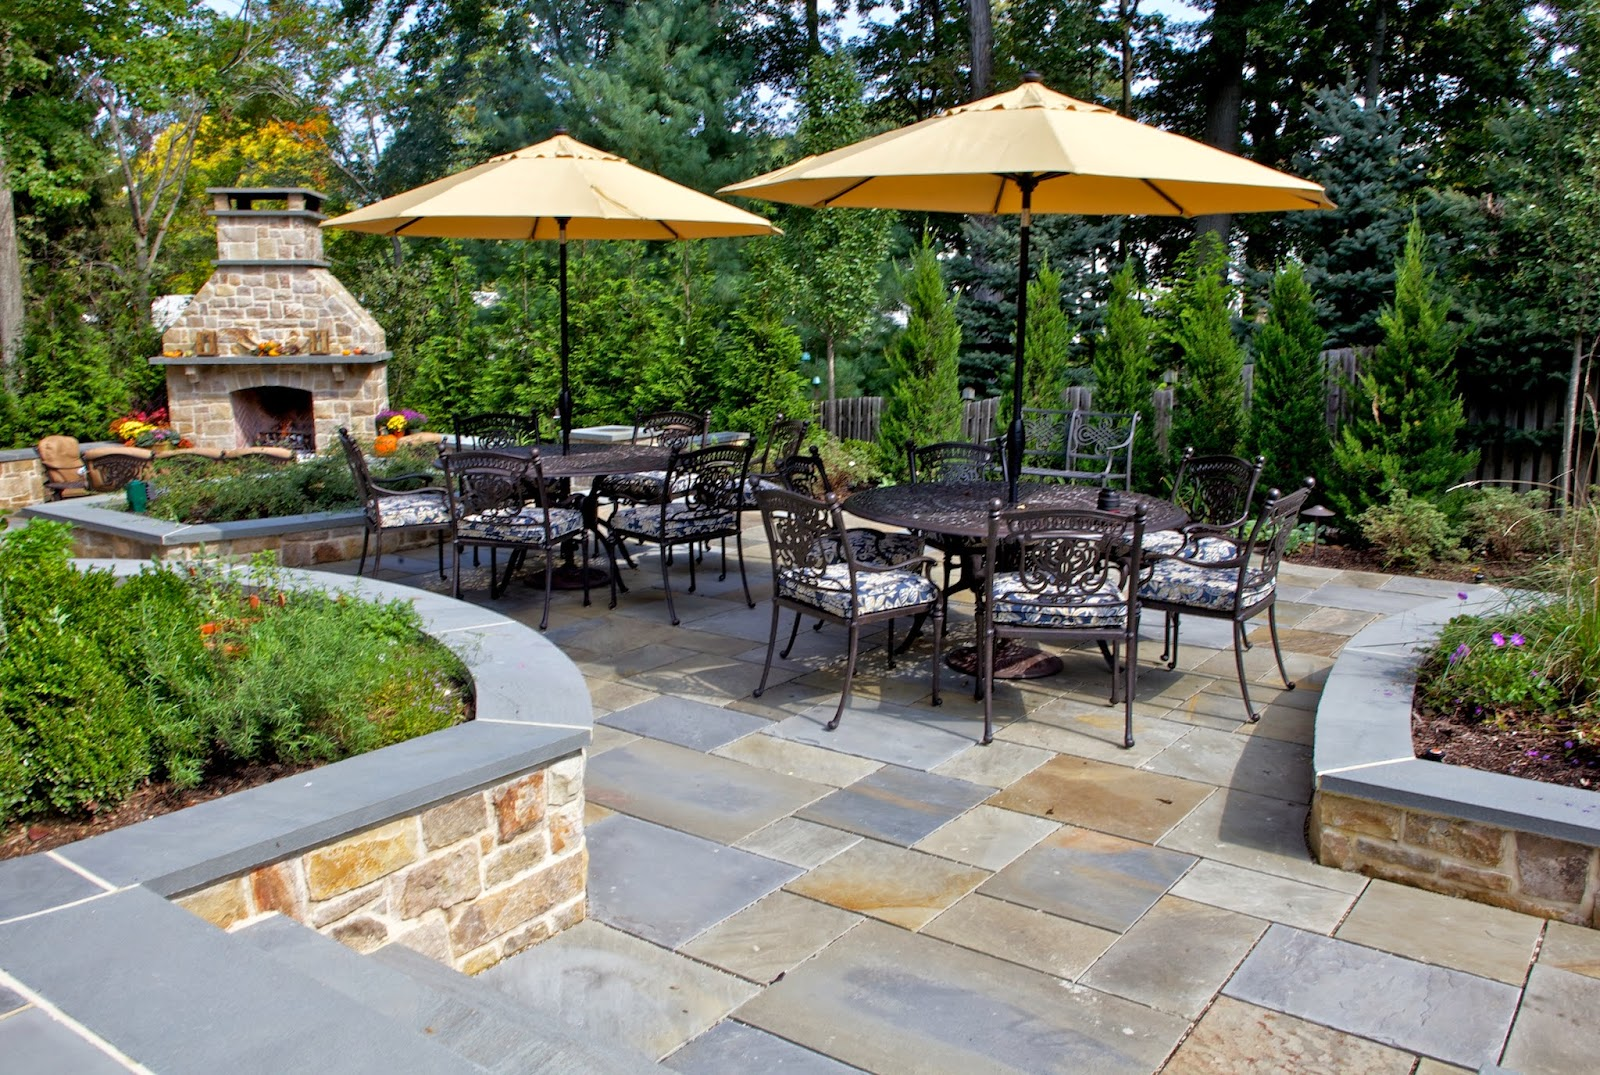 Backyard patio pavers patio design ideas - Paver designs for backyard ...